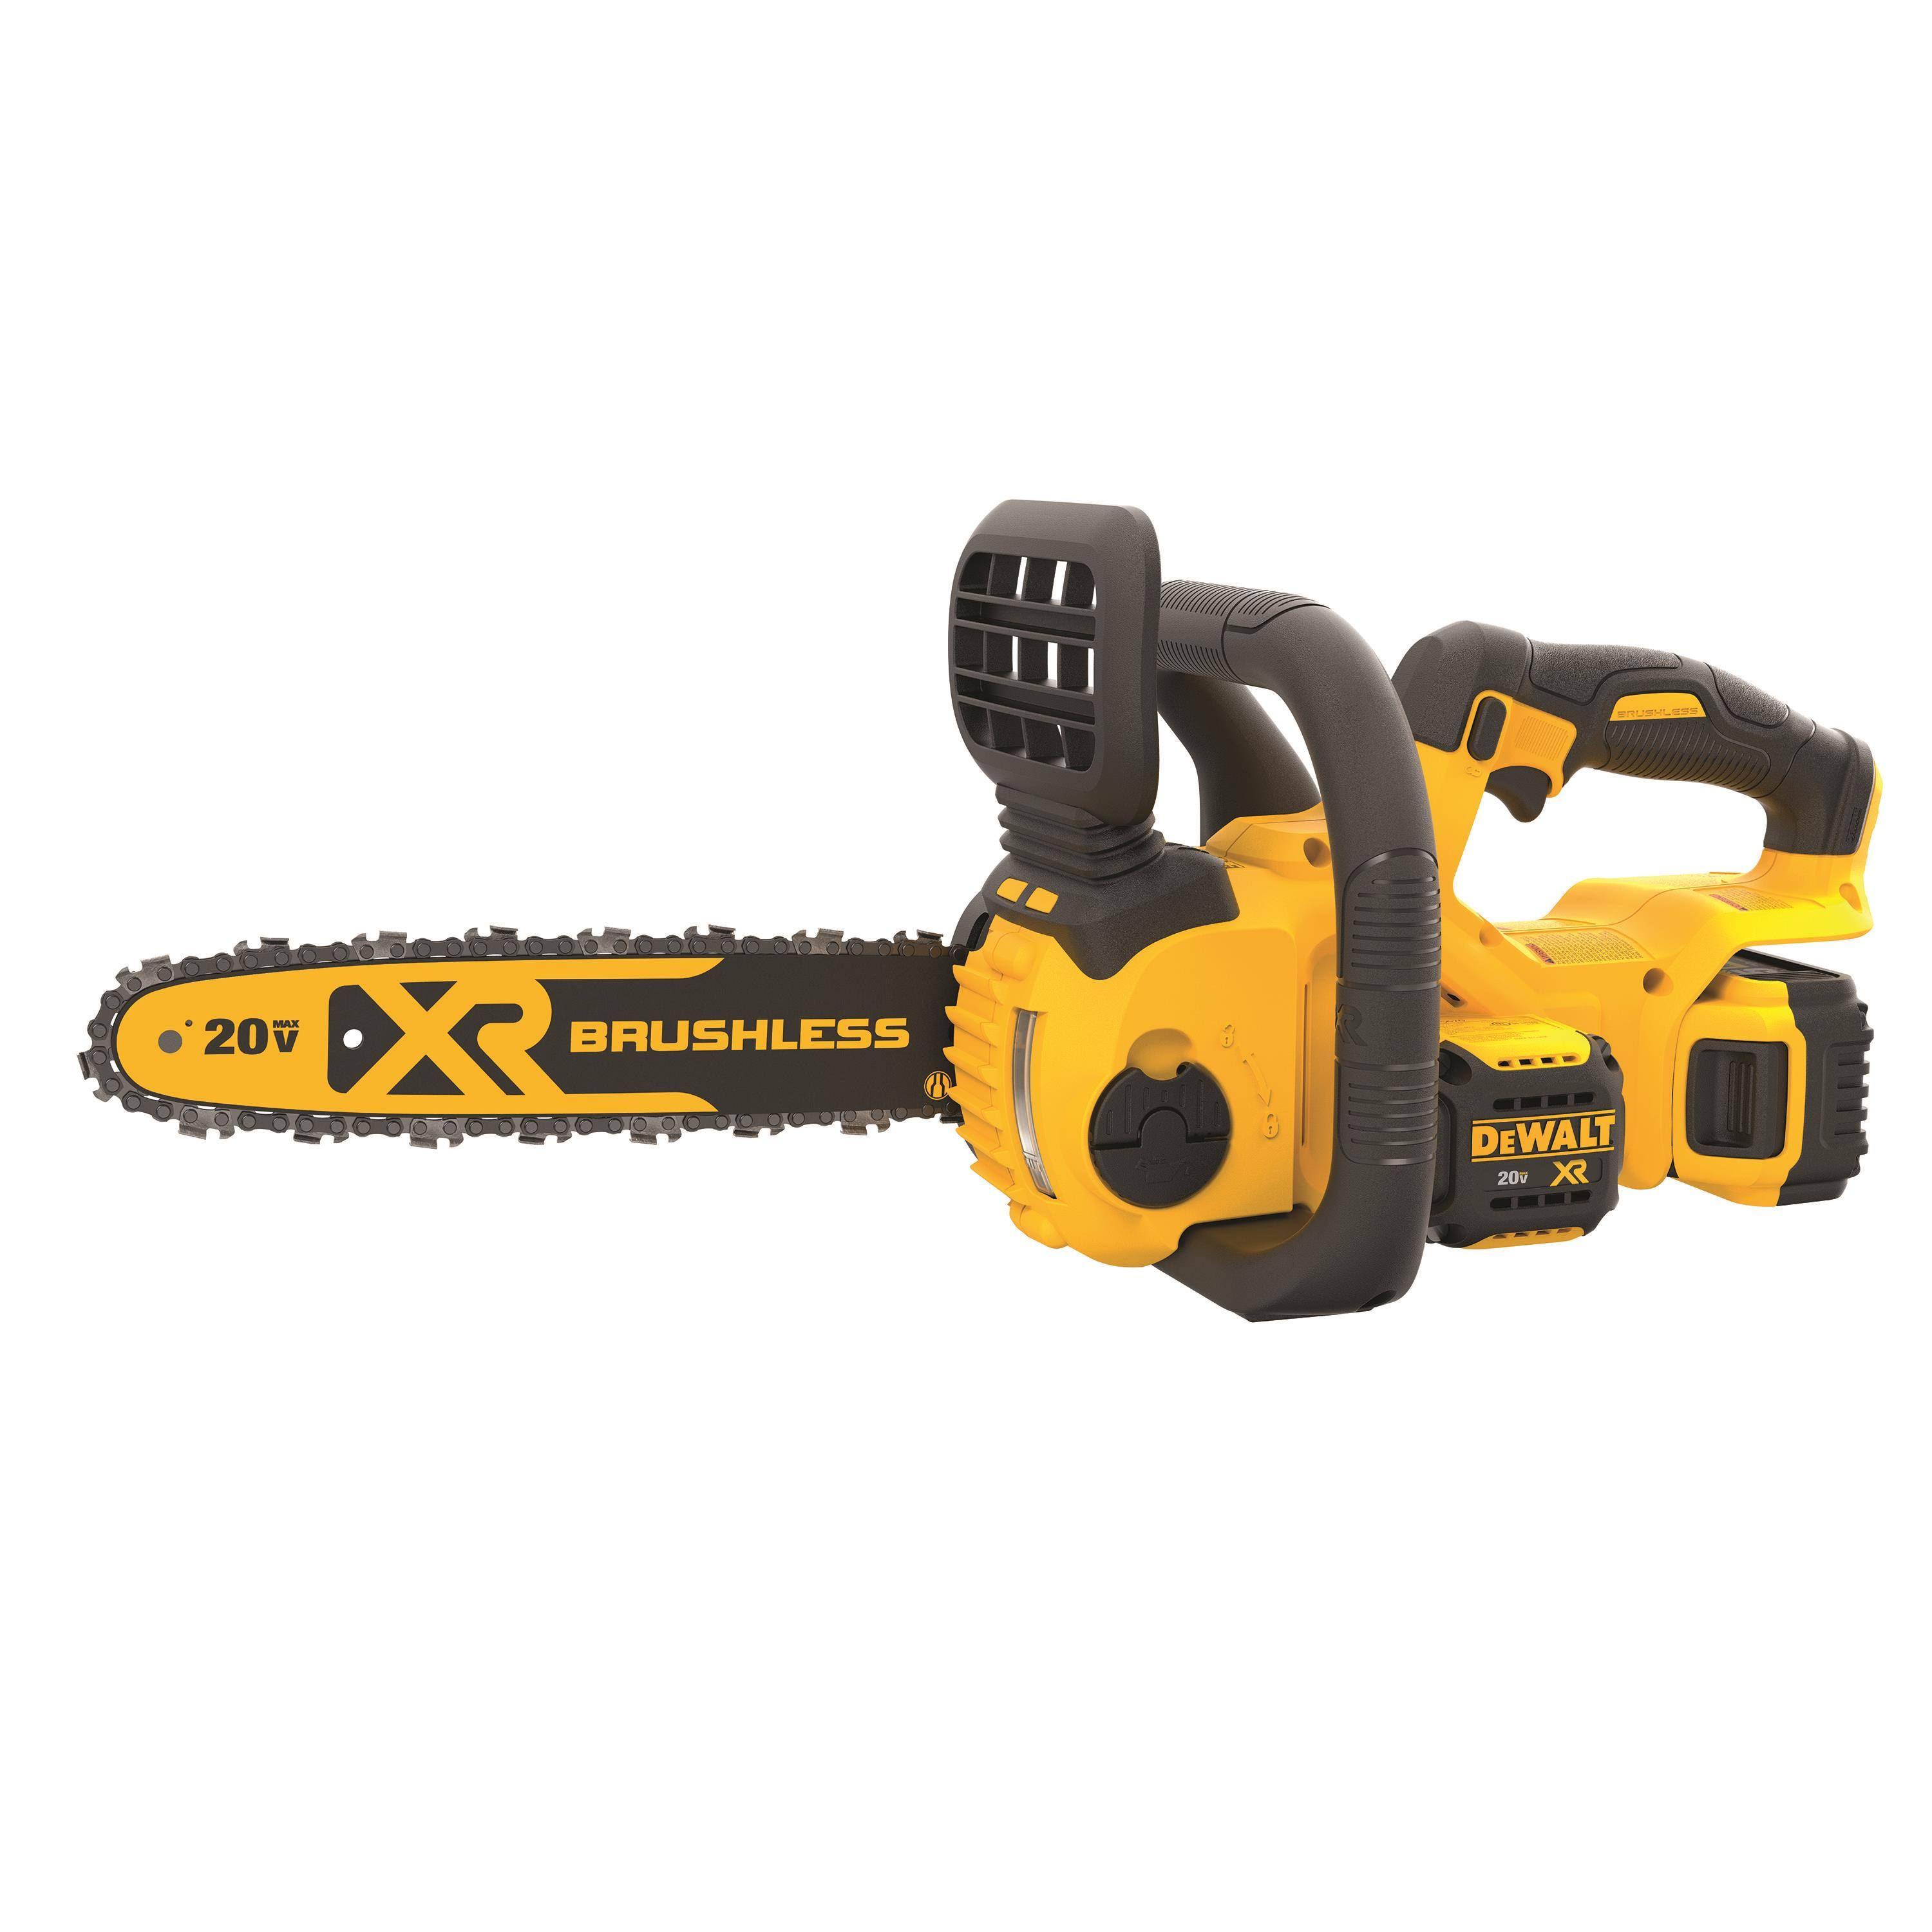 Dewalt MAX XR Lithium-Ion Cordless Brushless Chainsaw, 5.0Ah Battery & Charger Included - 20V, 12""